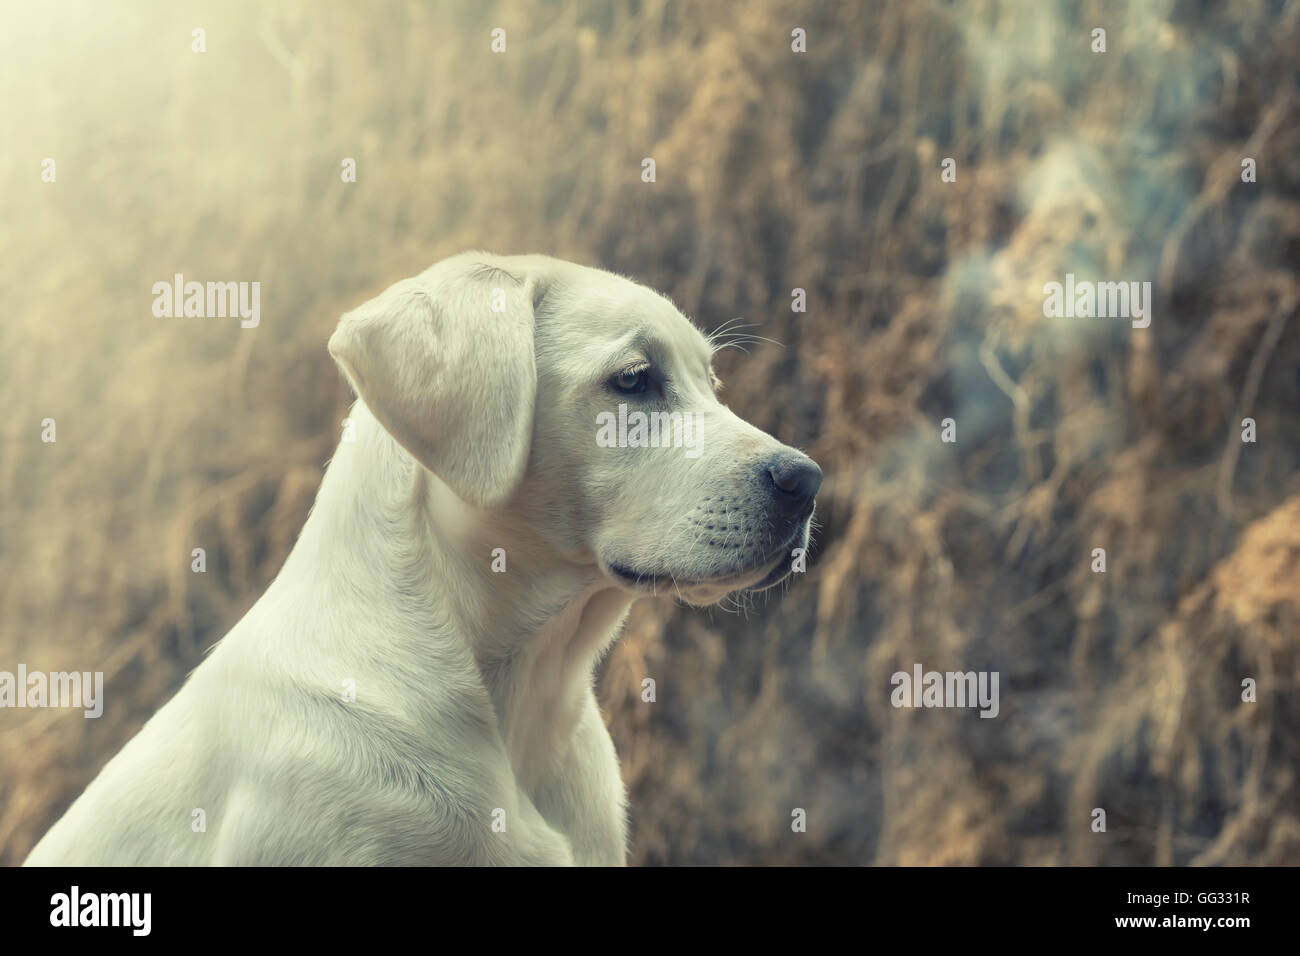 Puppy Breath Stock Photos Puppy Breath Stock Images Alamy